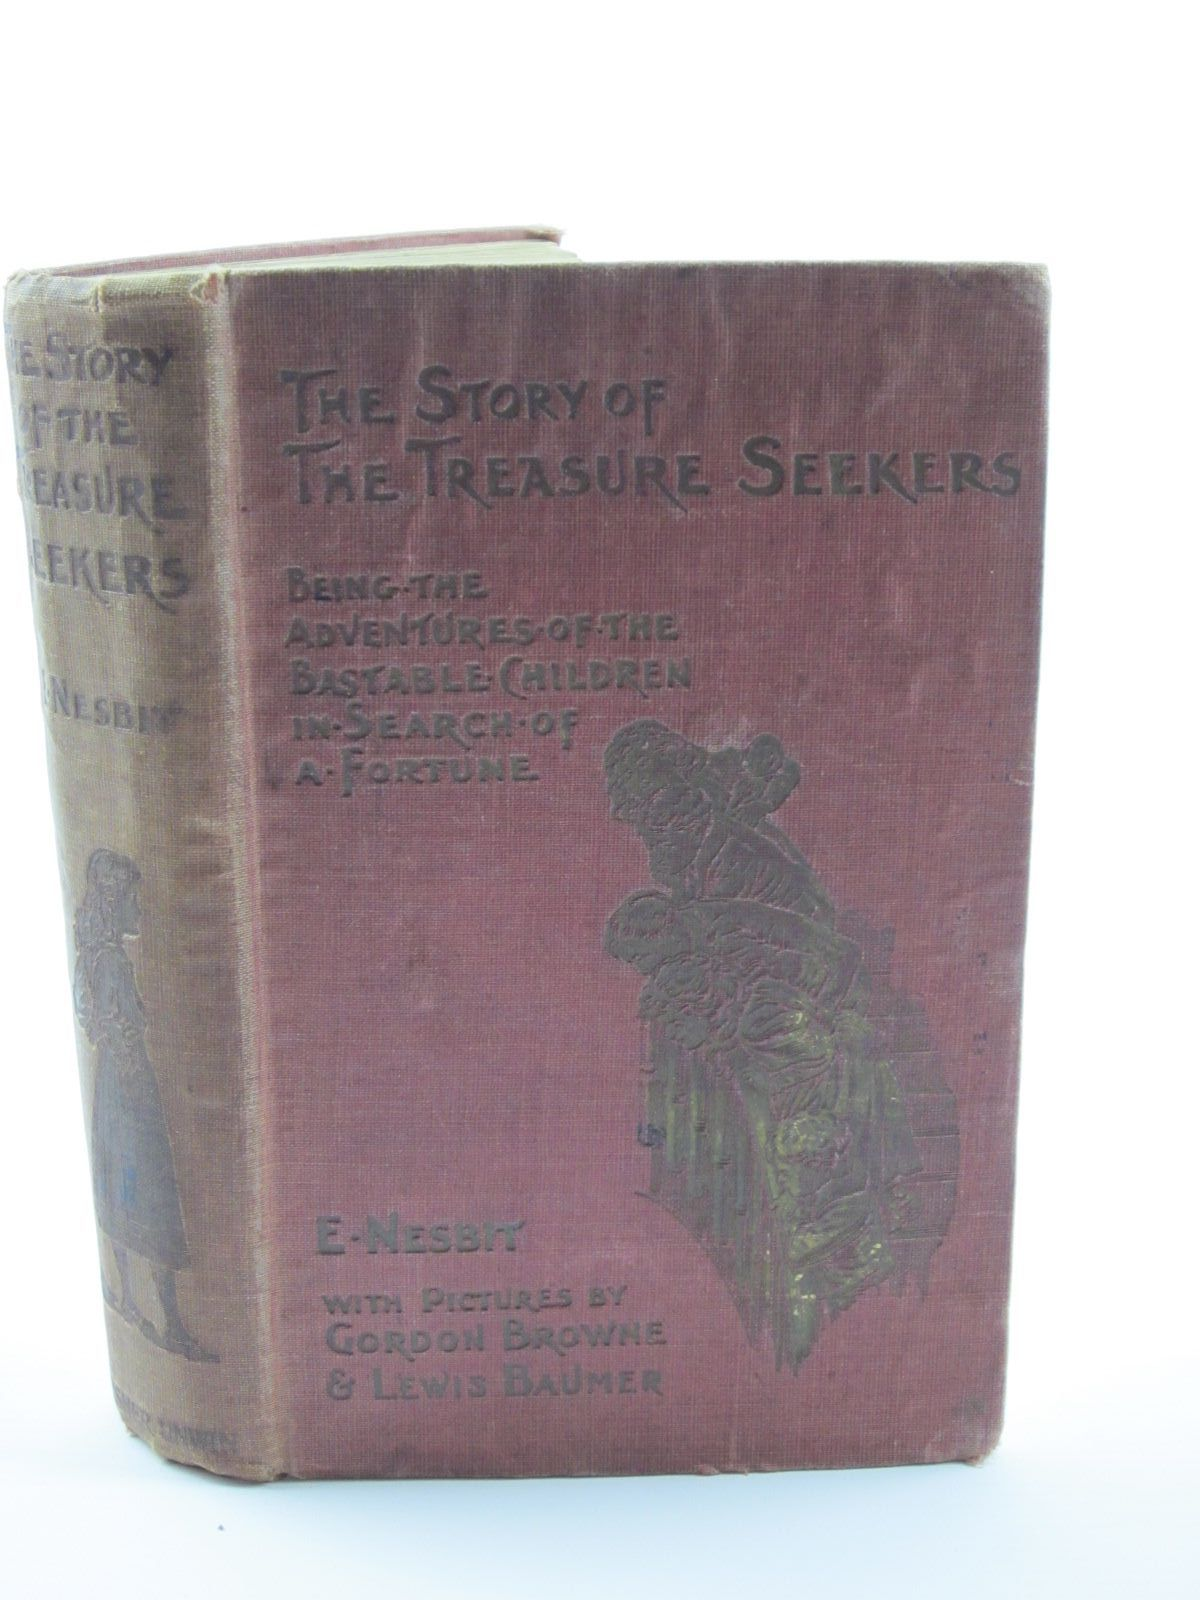 Photo of THE STORY OF THE TREASURE SEEKERS written by Nesbit, E. illustrated by Browne, Gordon<br />Baumer, Lewis published by T. Fisher Unwin (STOCK CODE: 1309246)  for sale by Stella & Rose's Books